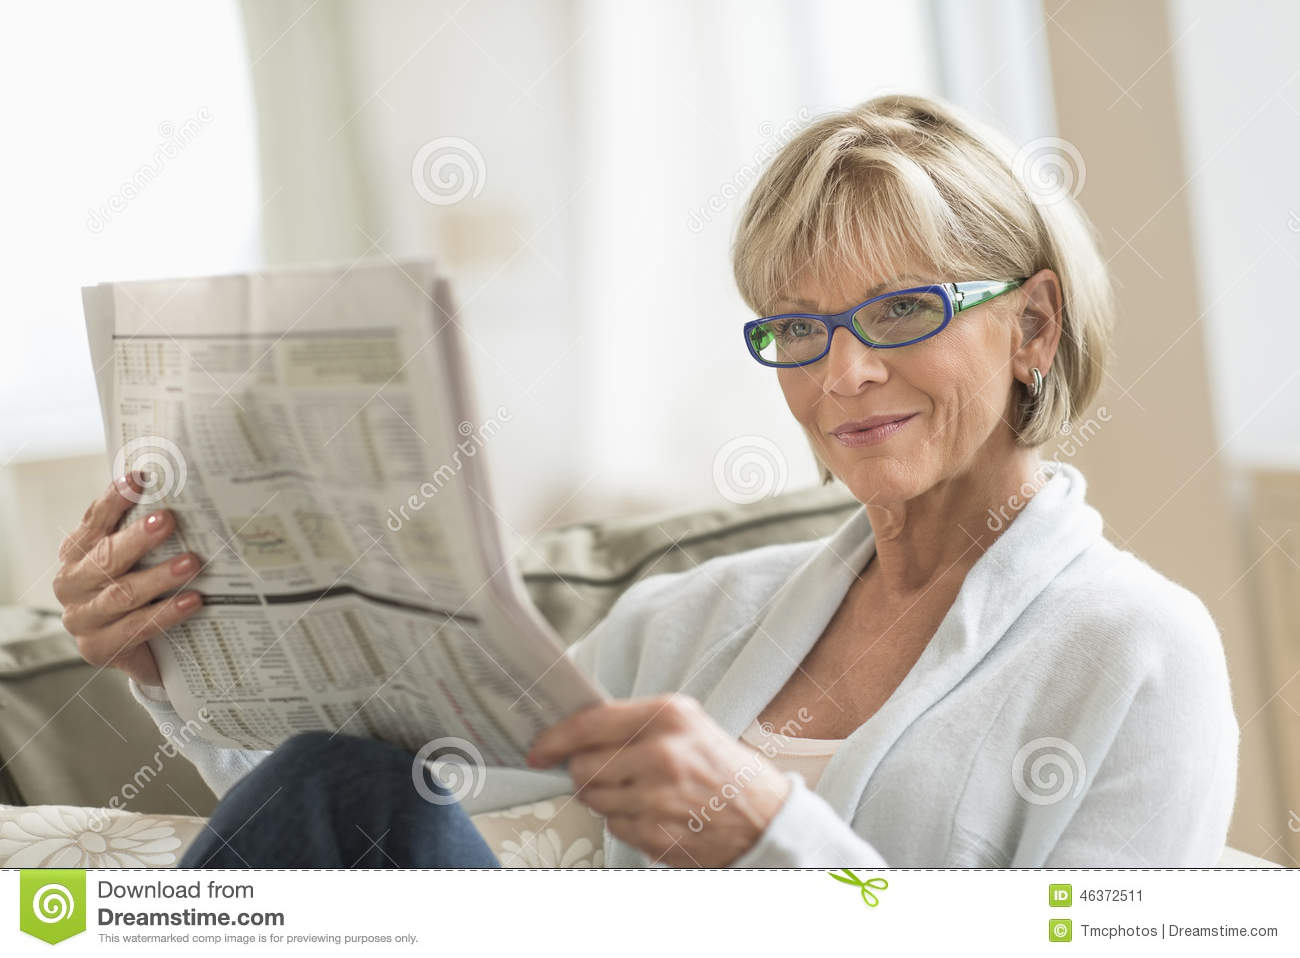 Woman Reading Newspaper While Relaxing On Sofa Stock Photo ...